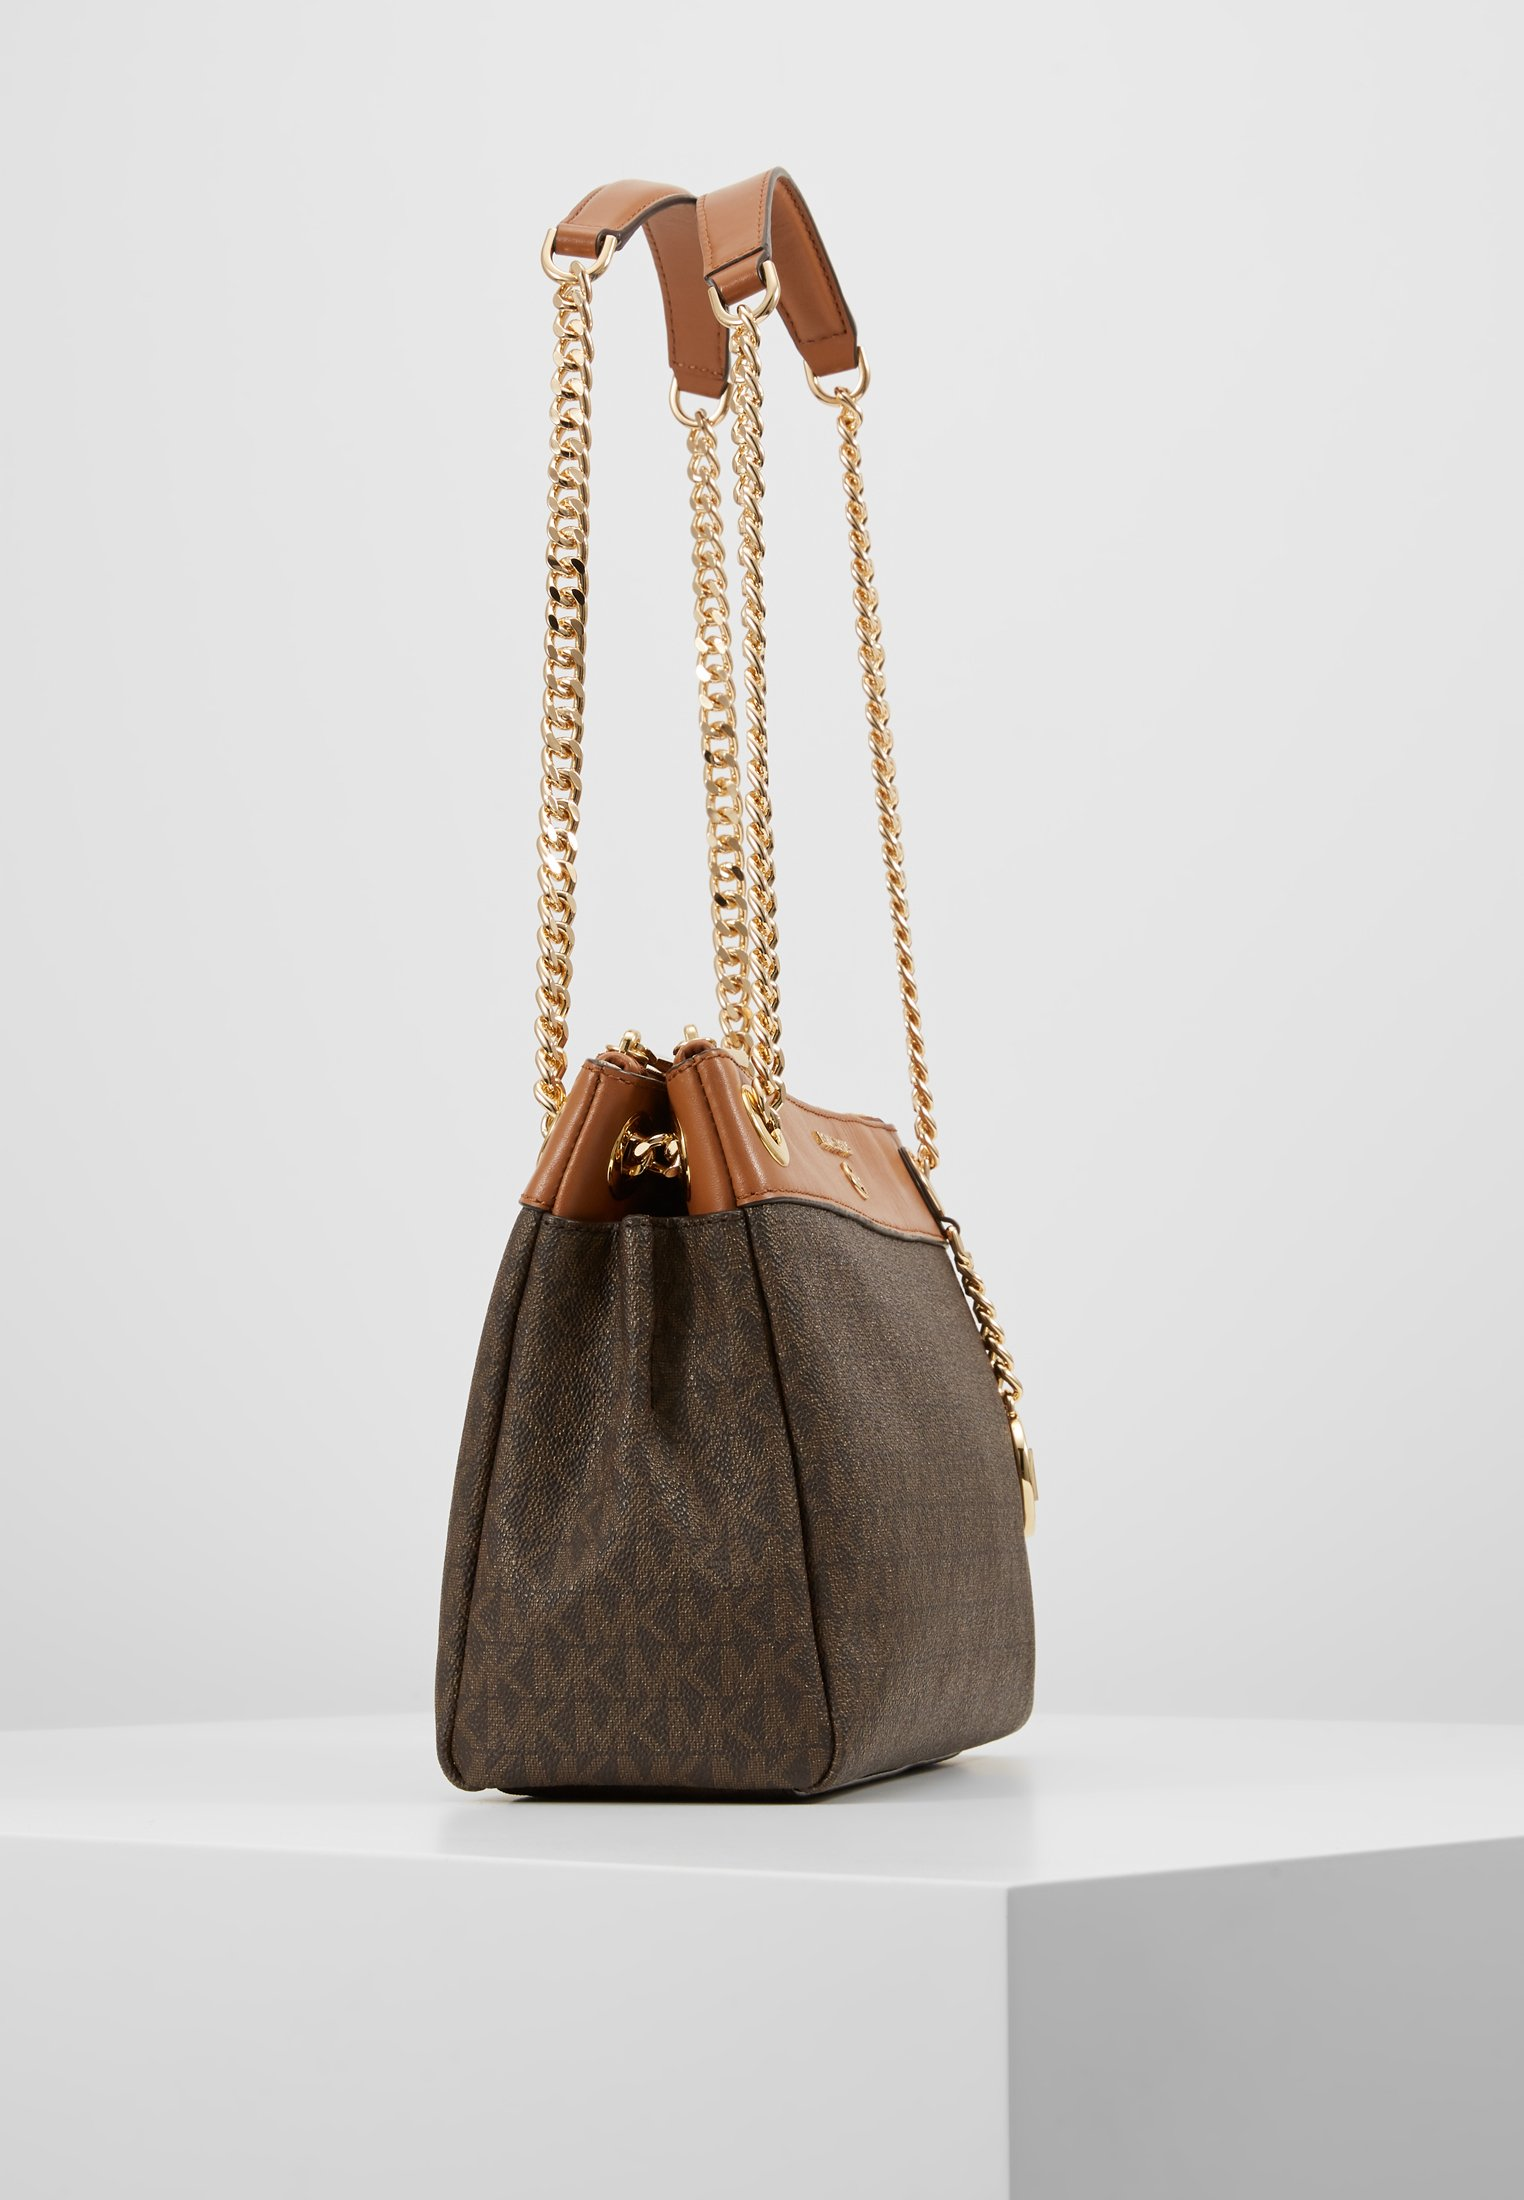 Michael Kors Sac À Main - Brown